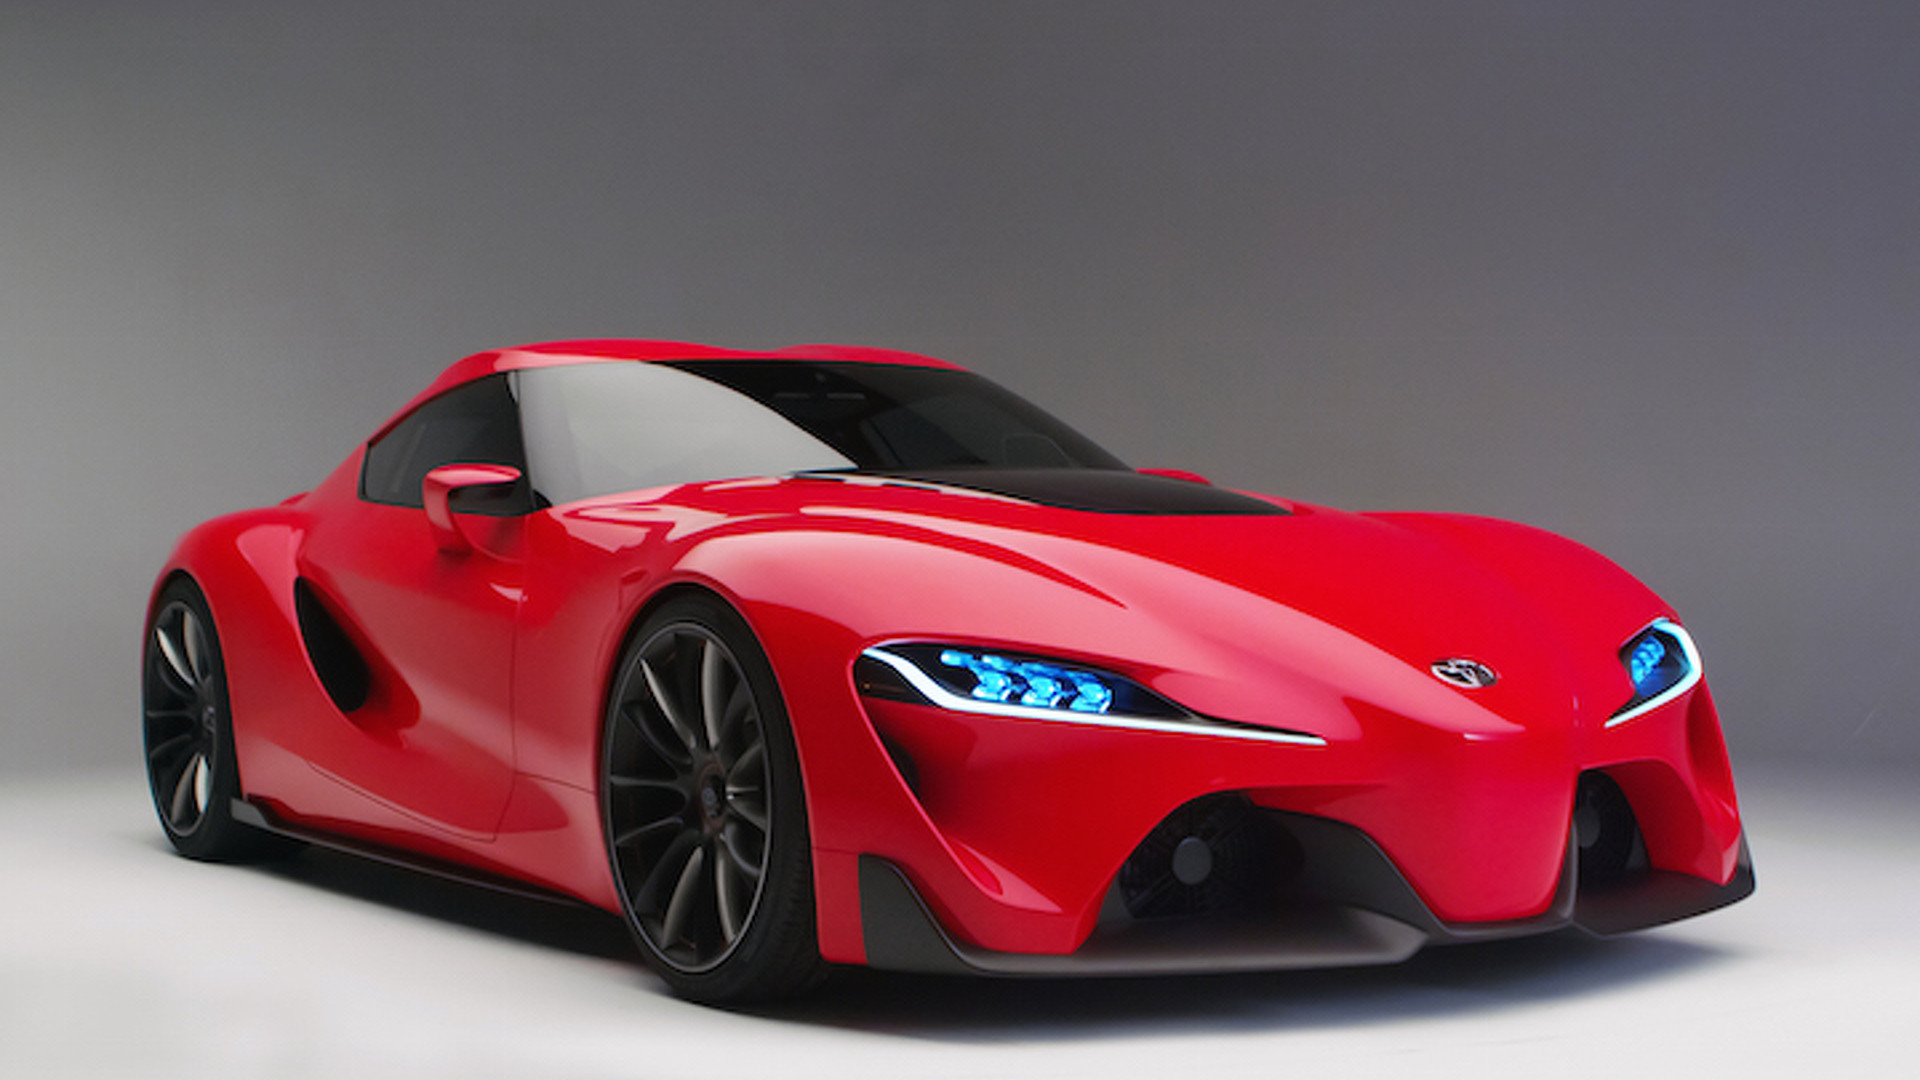 More detail on the upcoming Toyota Supra